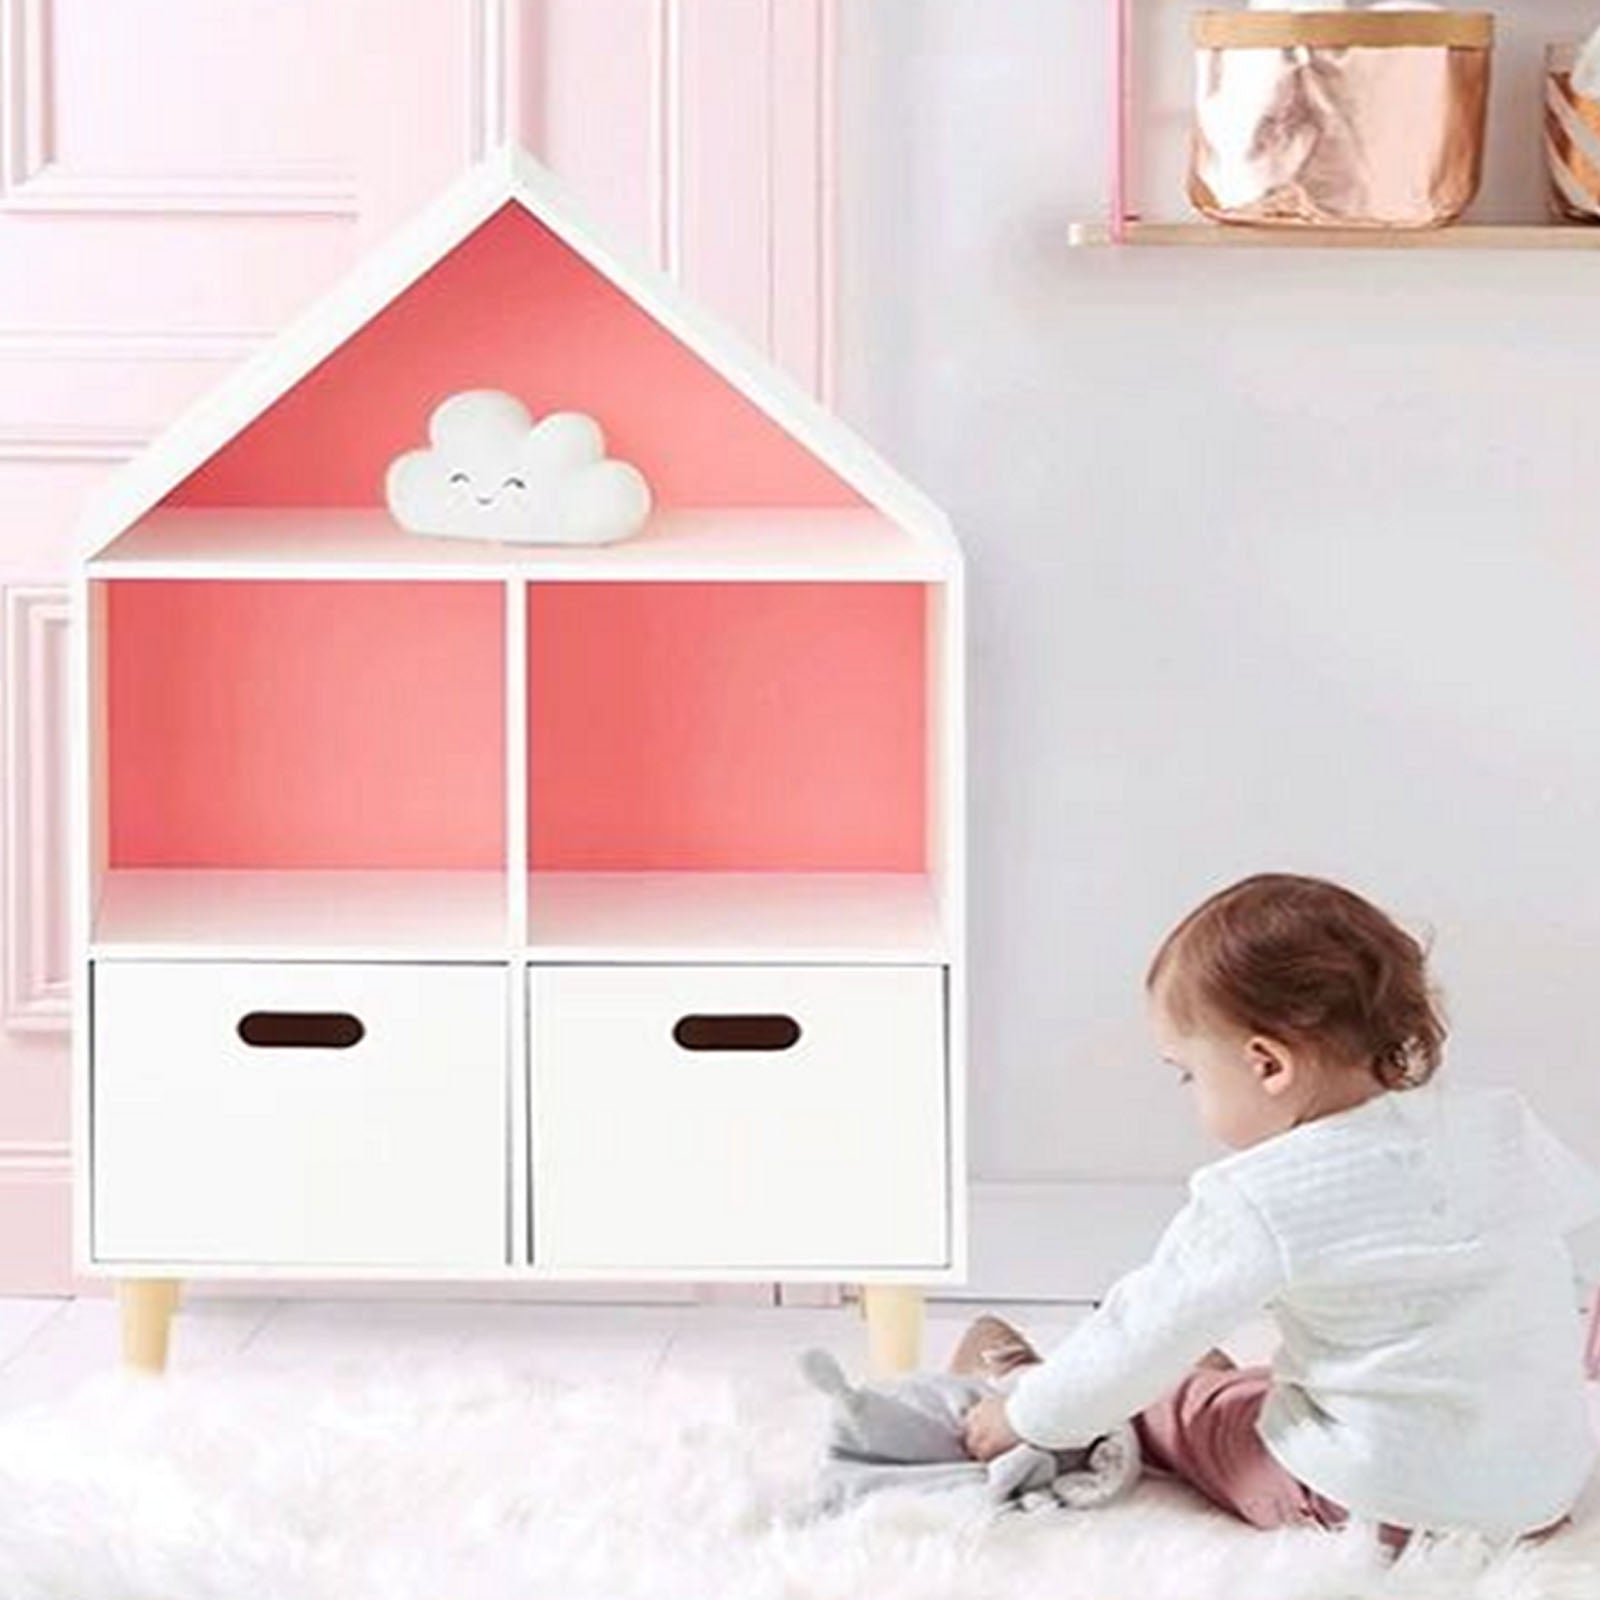 Pre-Order 70 days delivery Kids Shelf  HY-S001 -  رف الاطفال - Shop Online Furniture and Home Decor Store in Dubai, UAE at ebarza